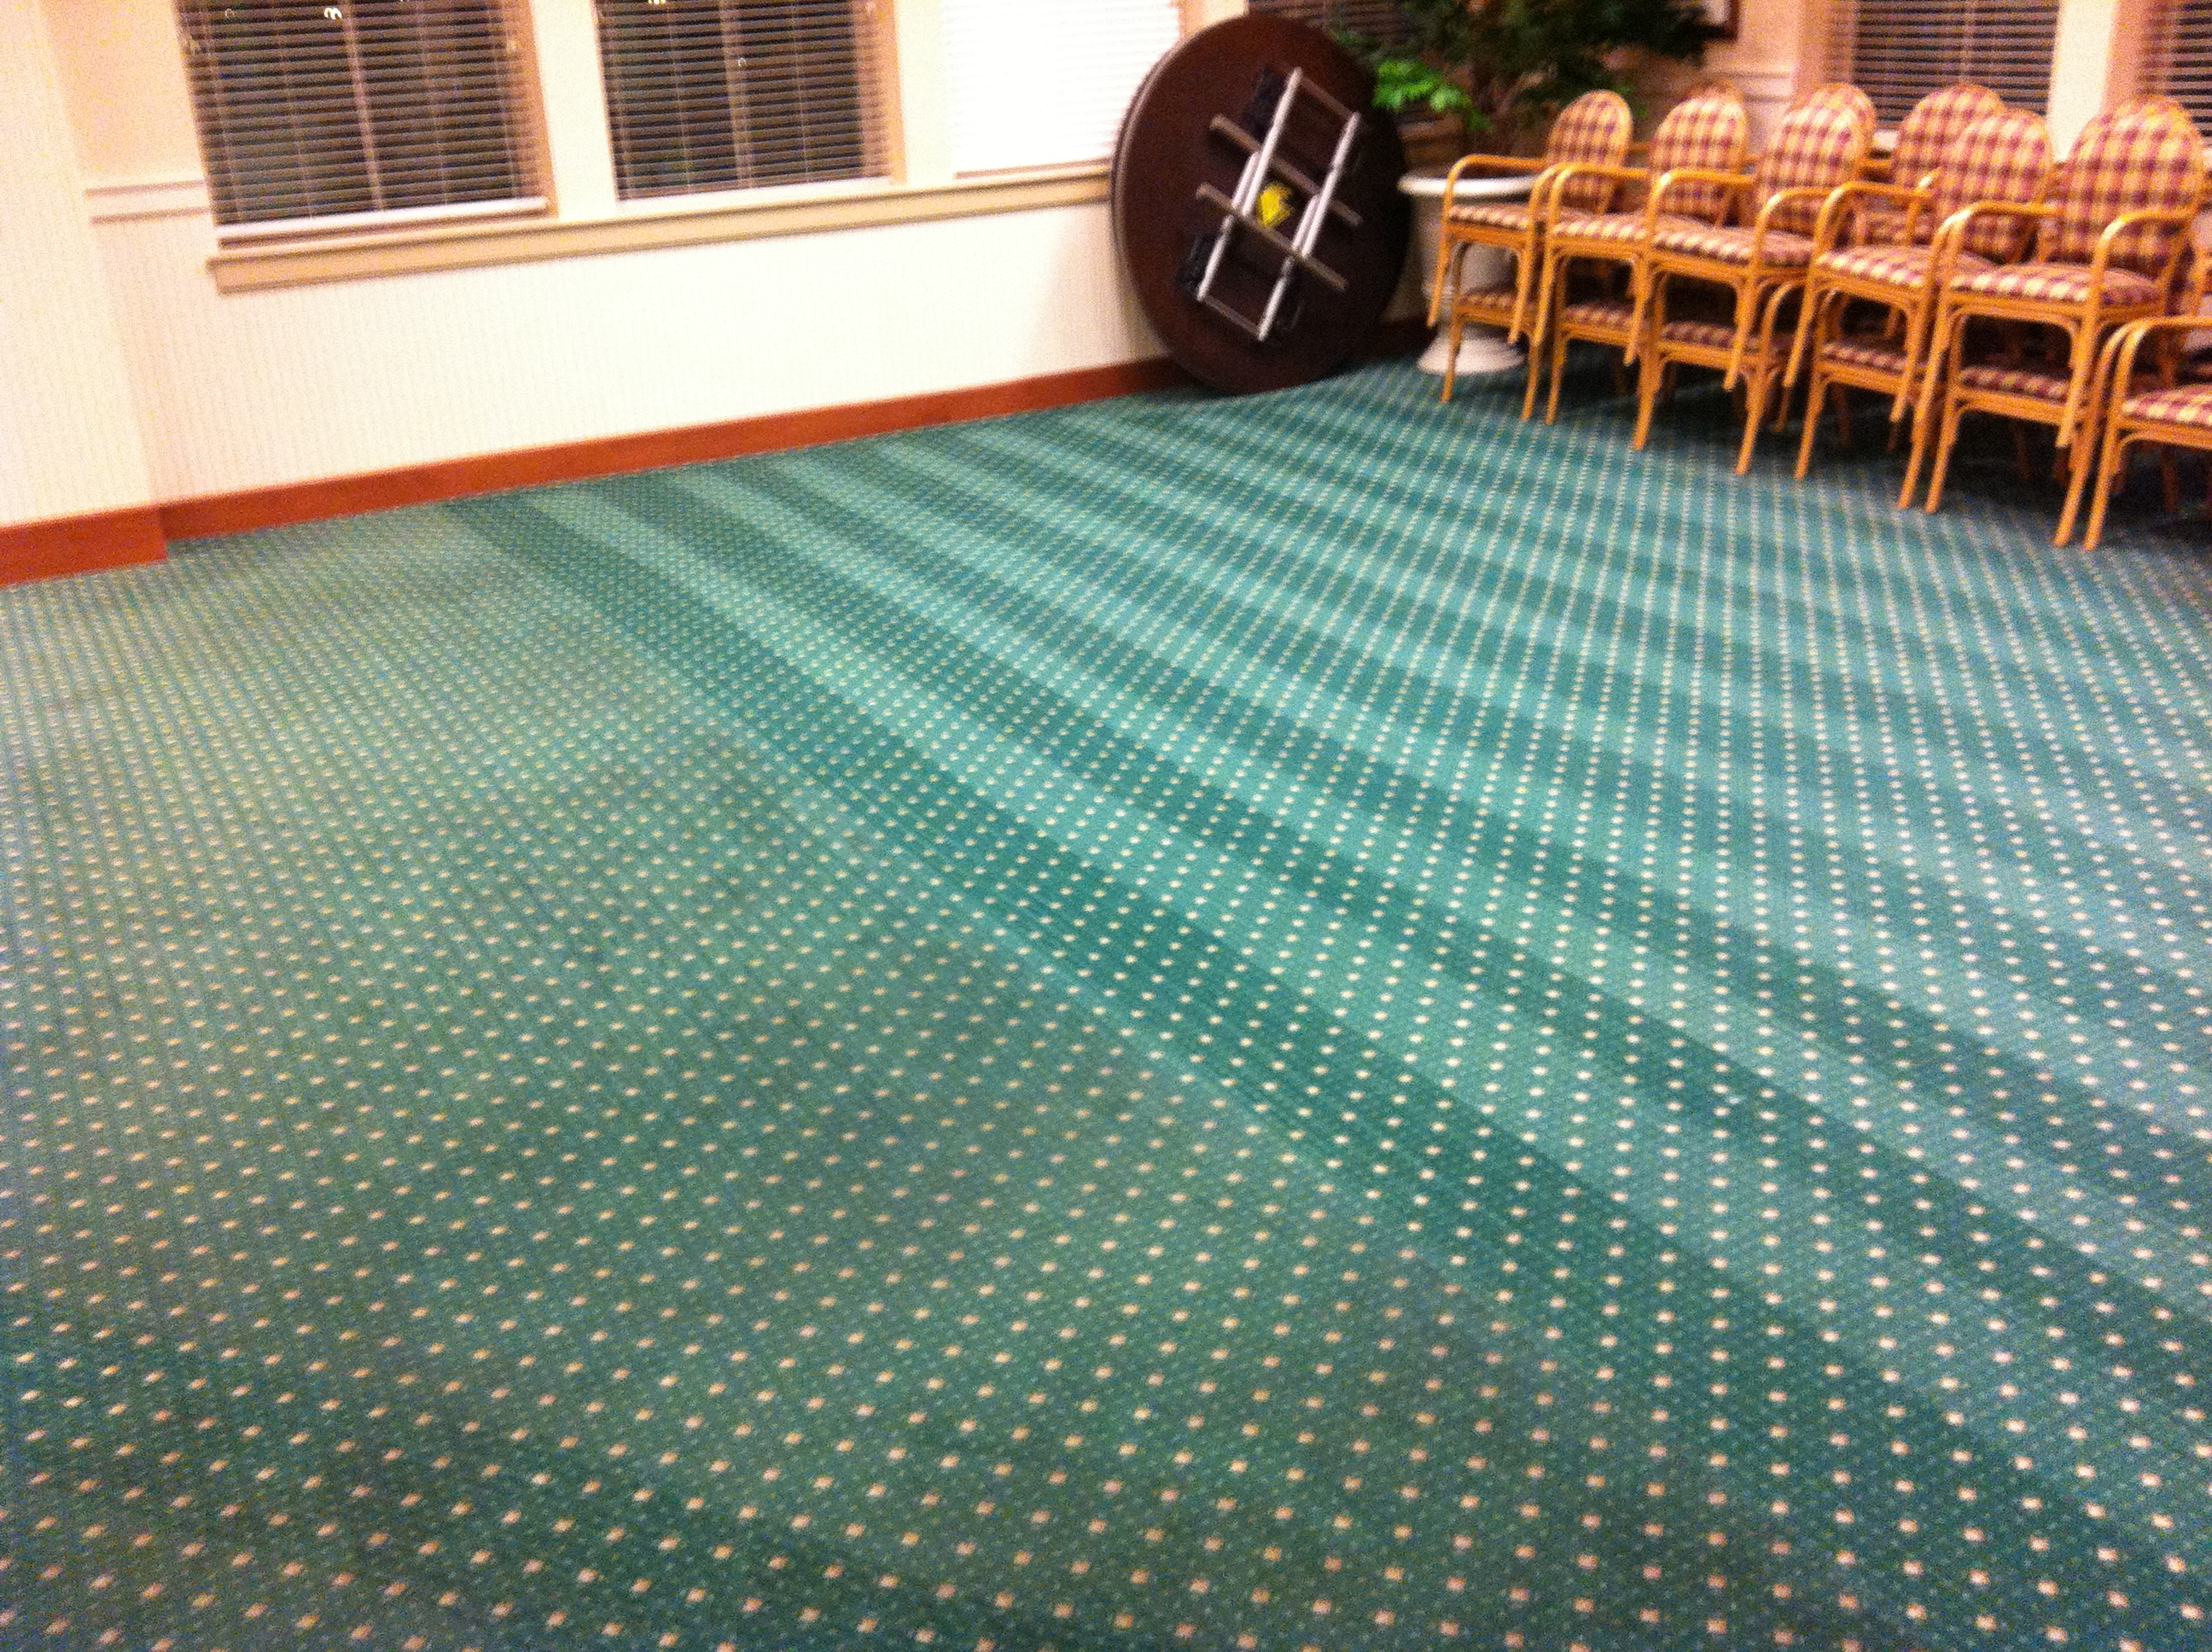 Carpet Cleaners Kildare Carpet Cleaning Chemdry Executive